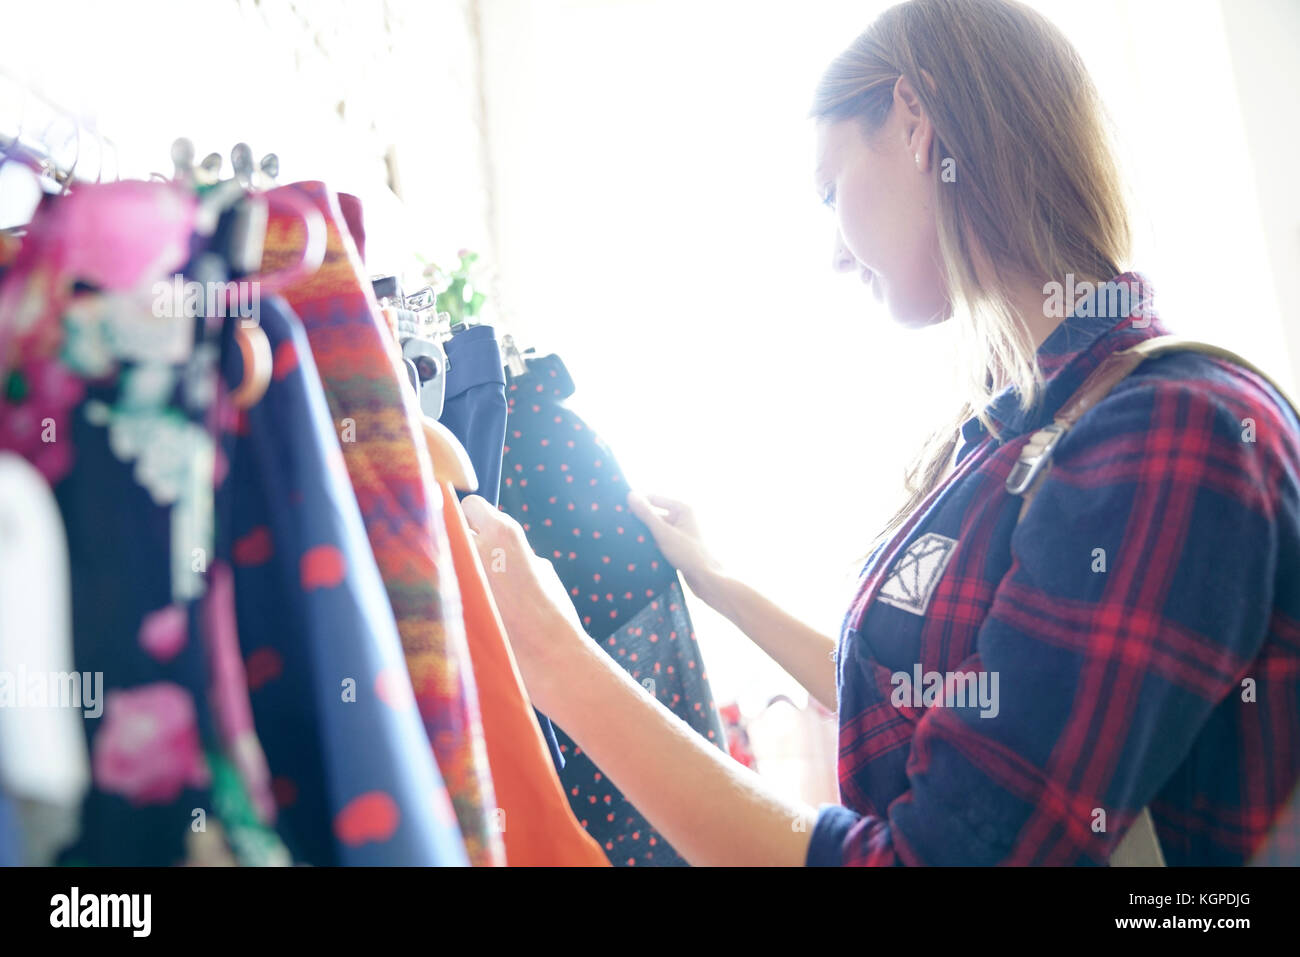 Woman in clothing store, shopping day - Stock Image